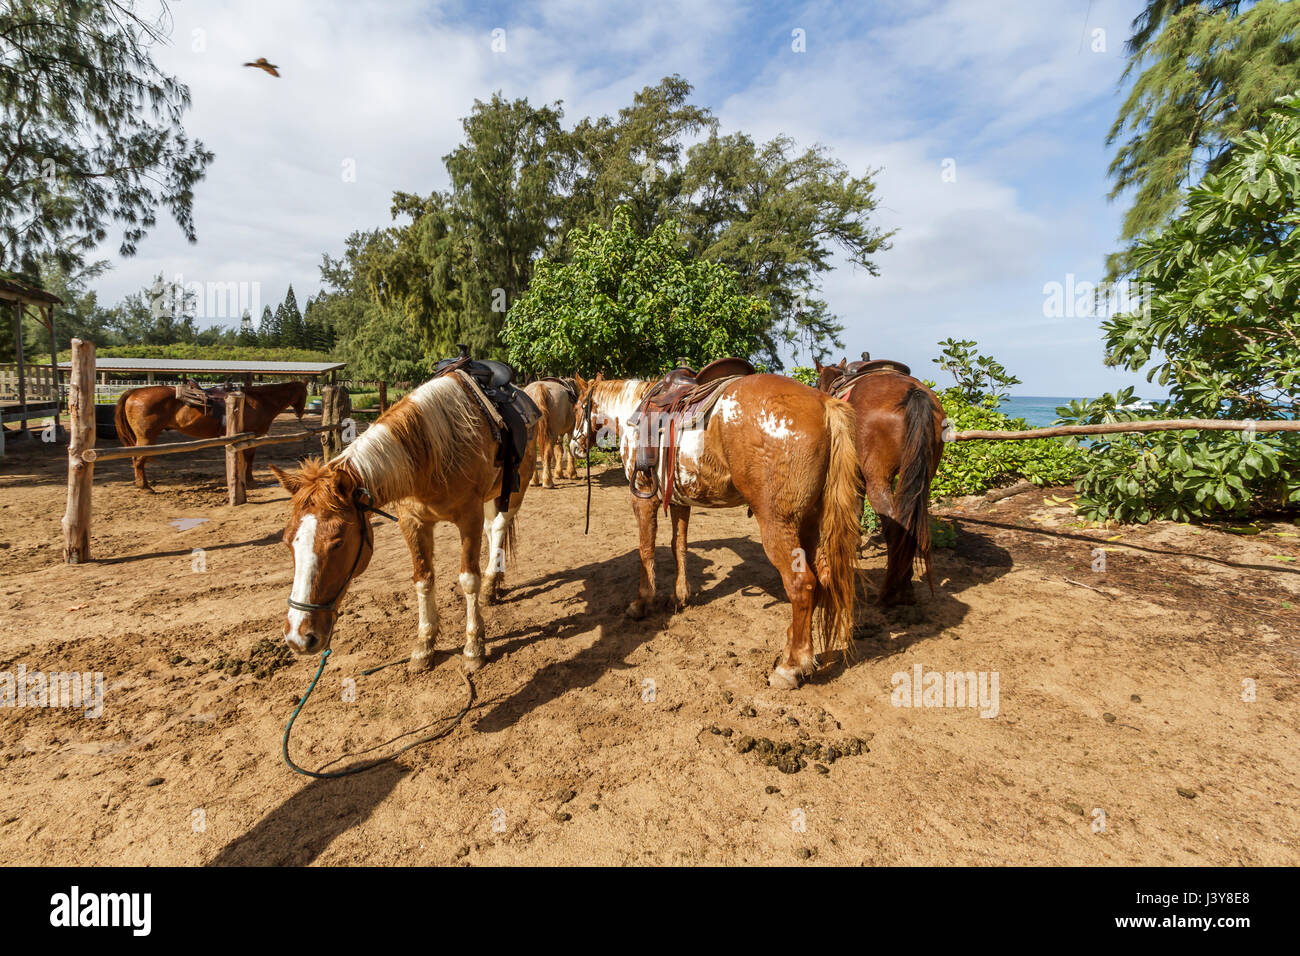 Kahuku Hawaii, Nov, 17 2015: Horses wait to take tourists for a ride at the Turtle Bay Resort stables on the north - Stock Image